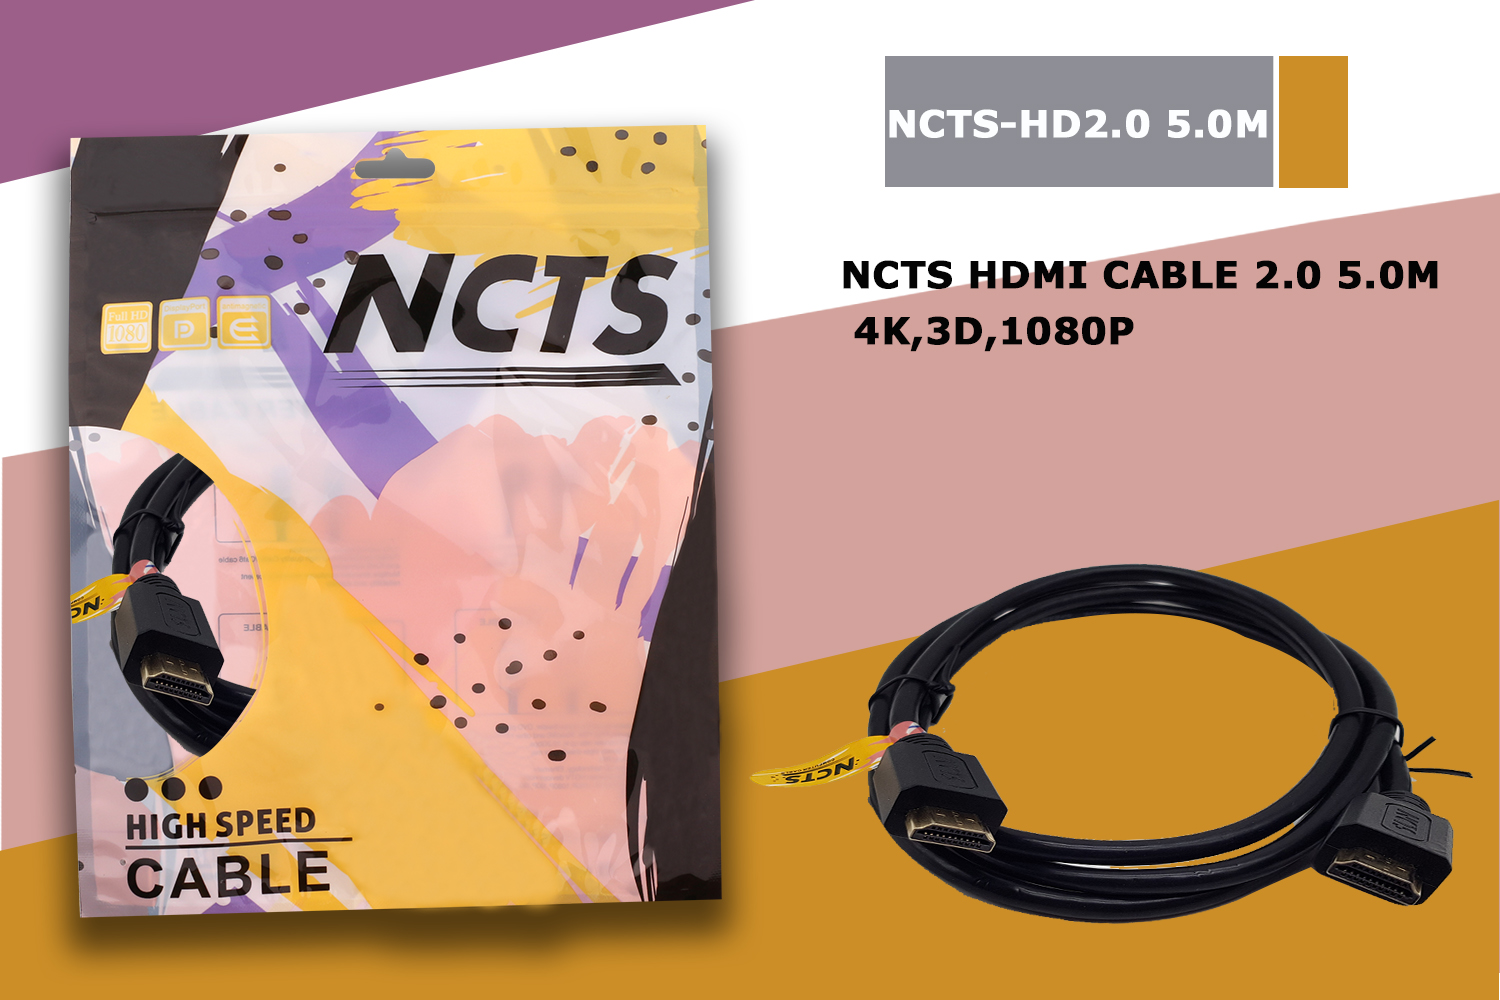 HDMI CABLE 2.0 5.0M 4K,3D,1080P